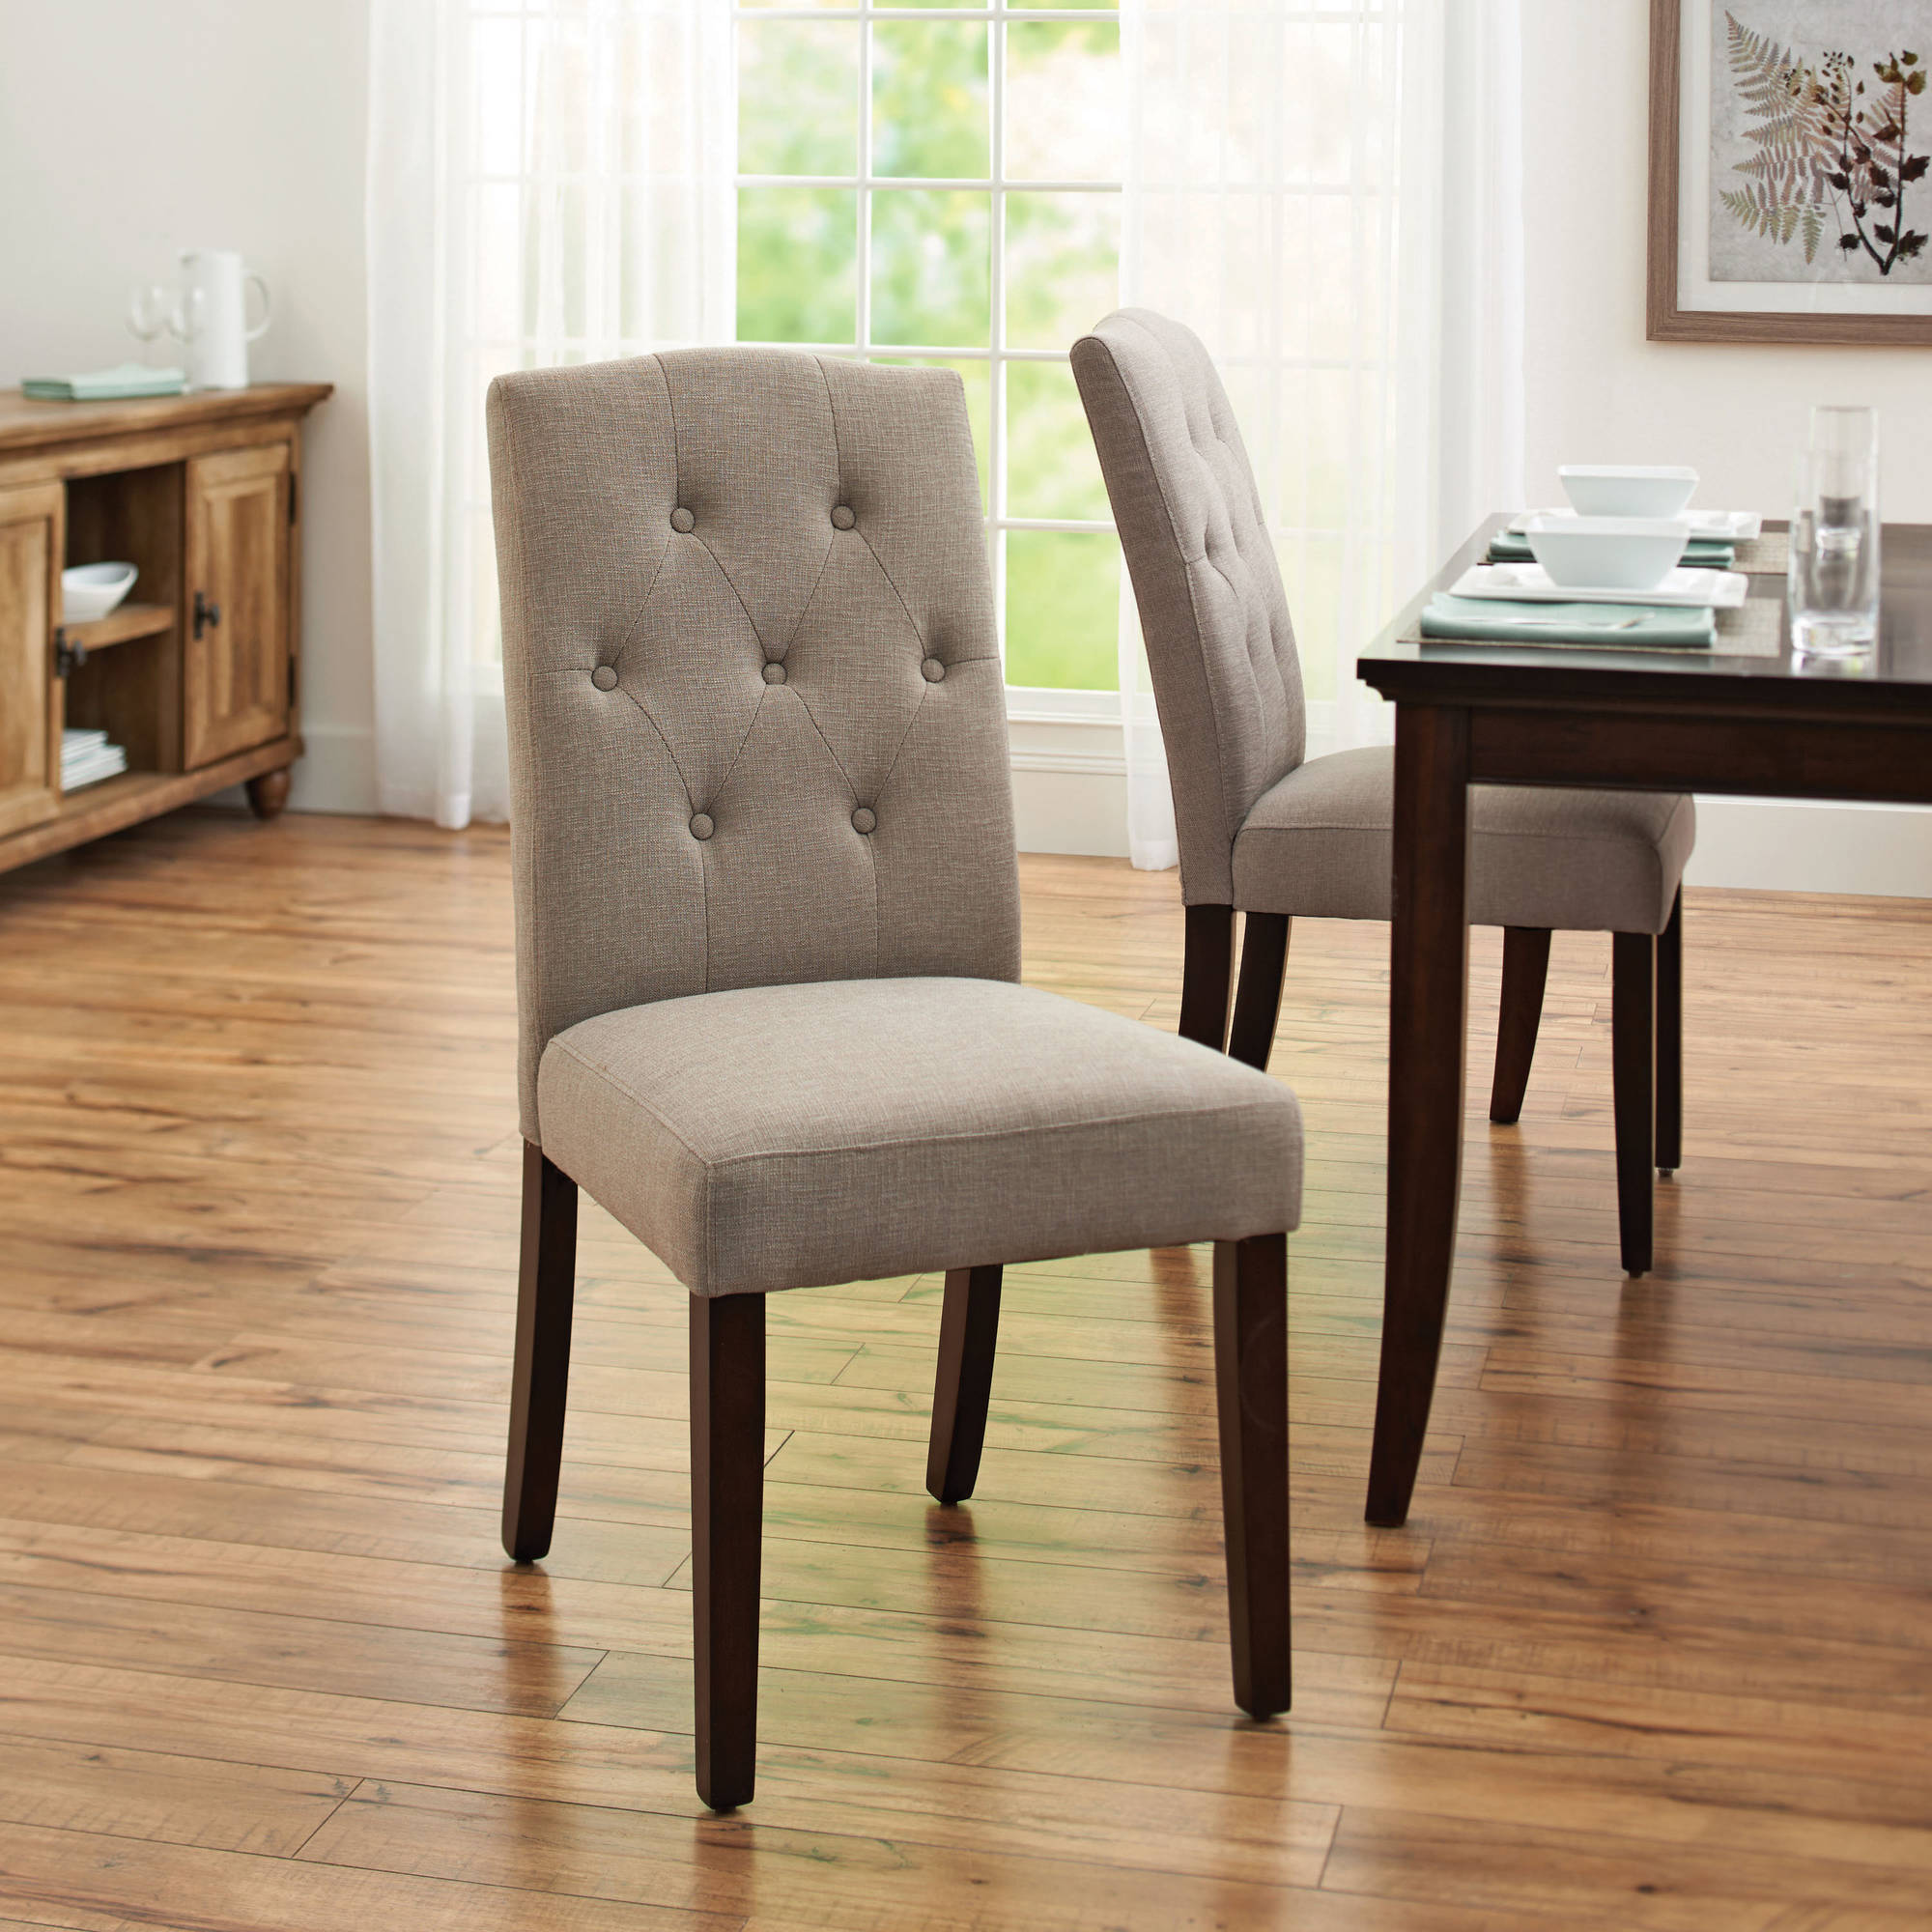 Taupe Dining Chairs | Enter Home